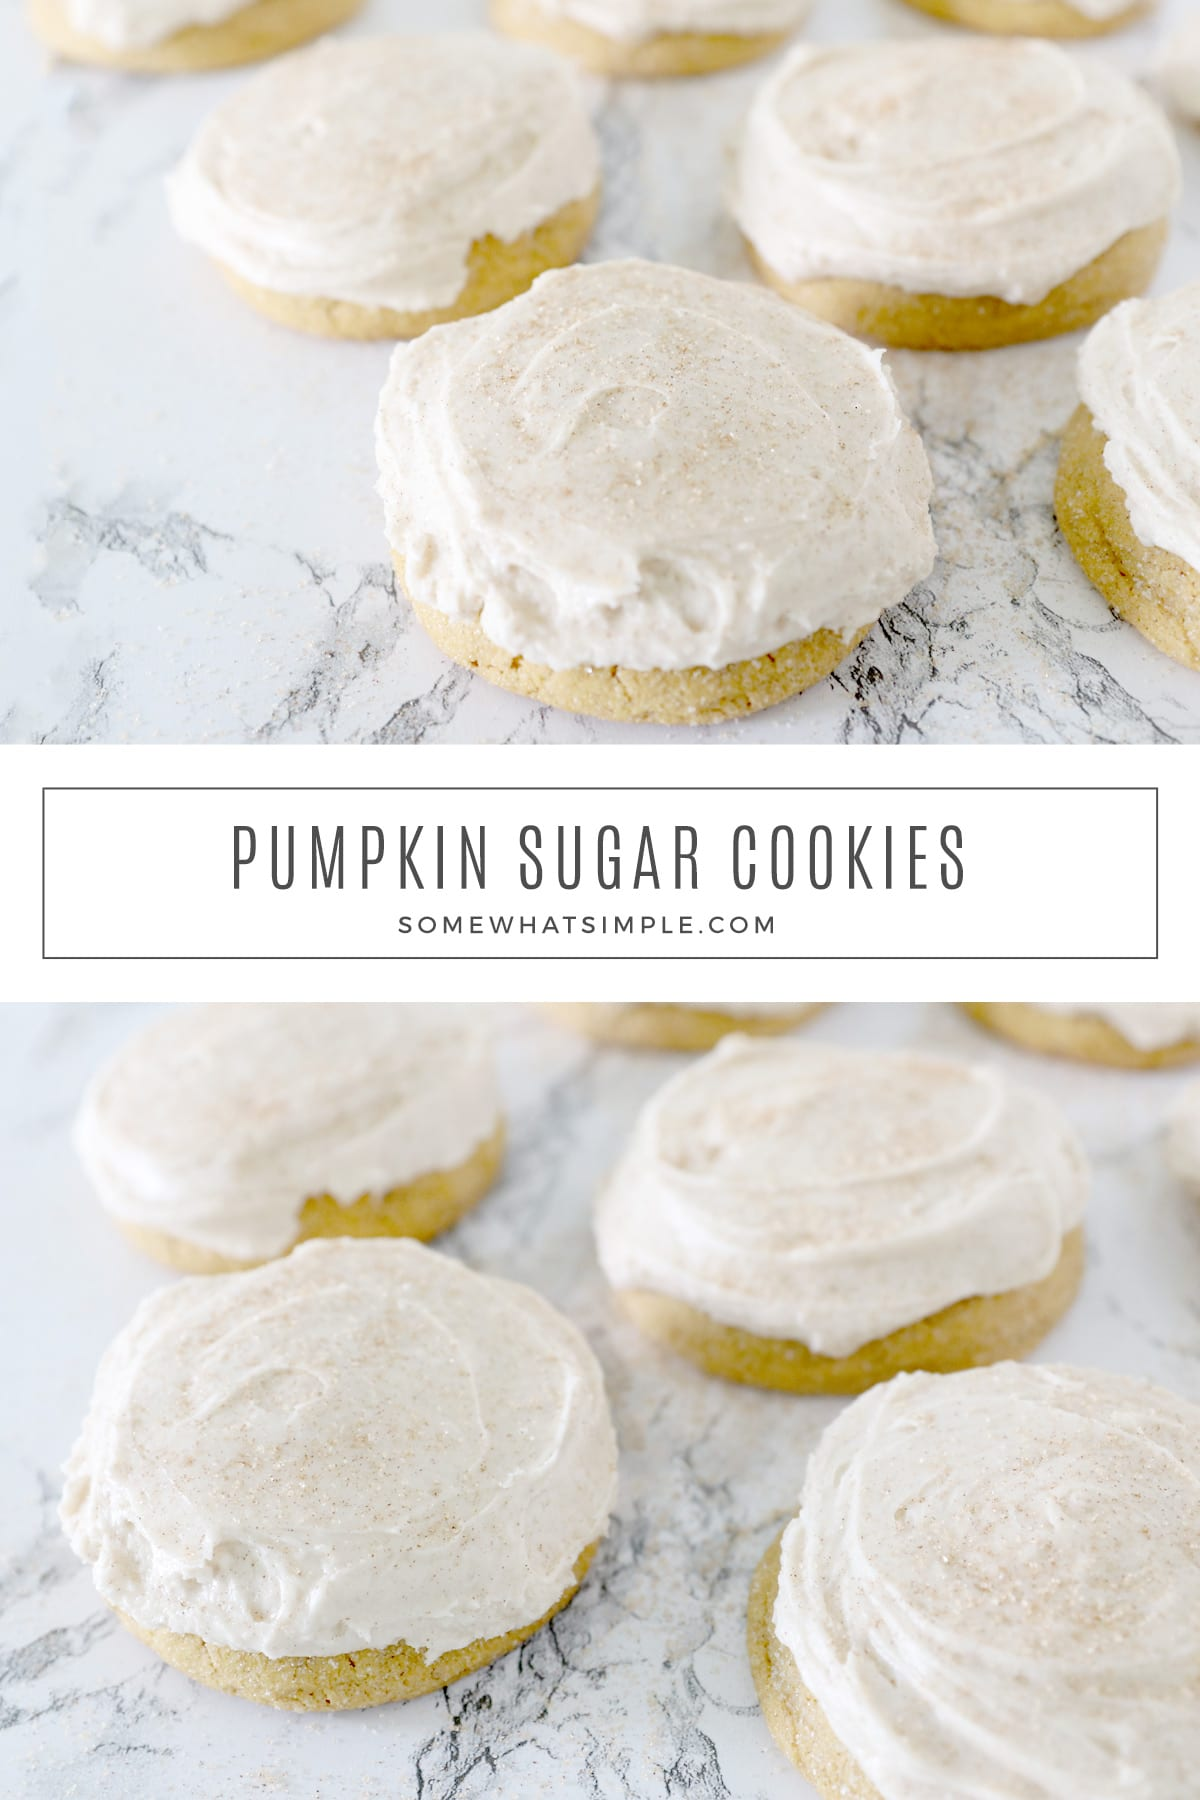 Deliciously soft Pumpkin Sugar Cookies are easy to make and taste amazing! Full of your favorite pumpkin spice flavors, these cookies are bound to become a fall family favorite! via @somewhatsimple